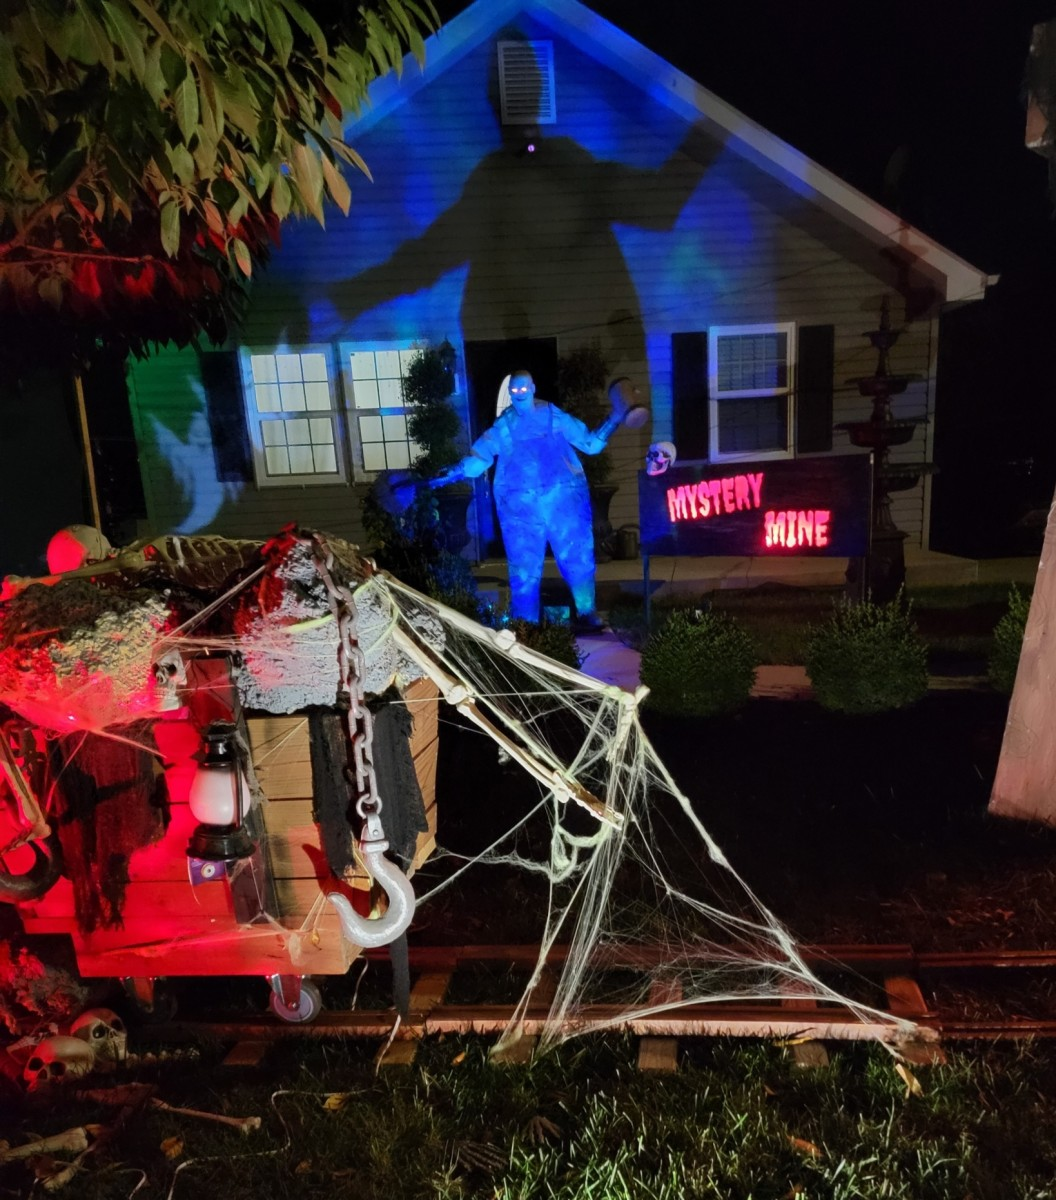 Some friends decorated their yard with a spooky mine scene complete with railroad tracks, a mine shaft, and a creepy character with a chainsaw.